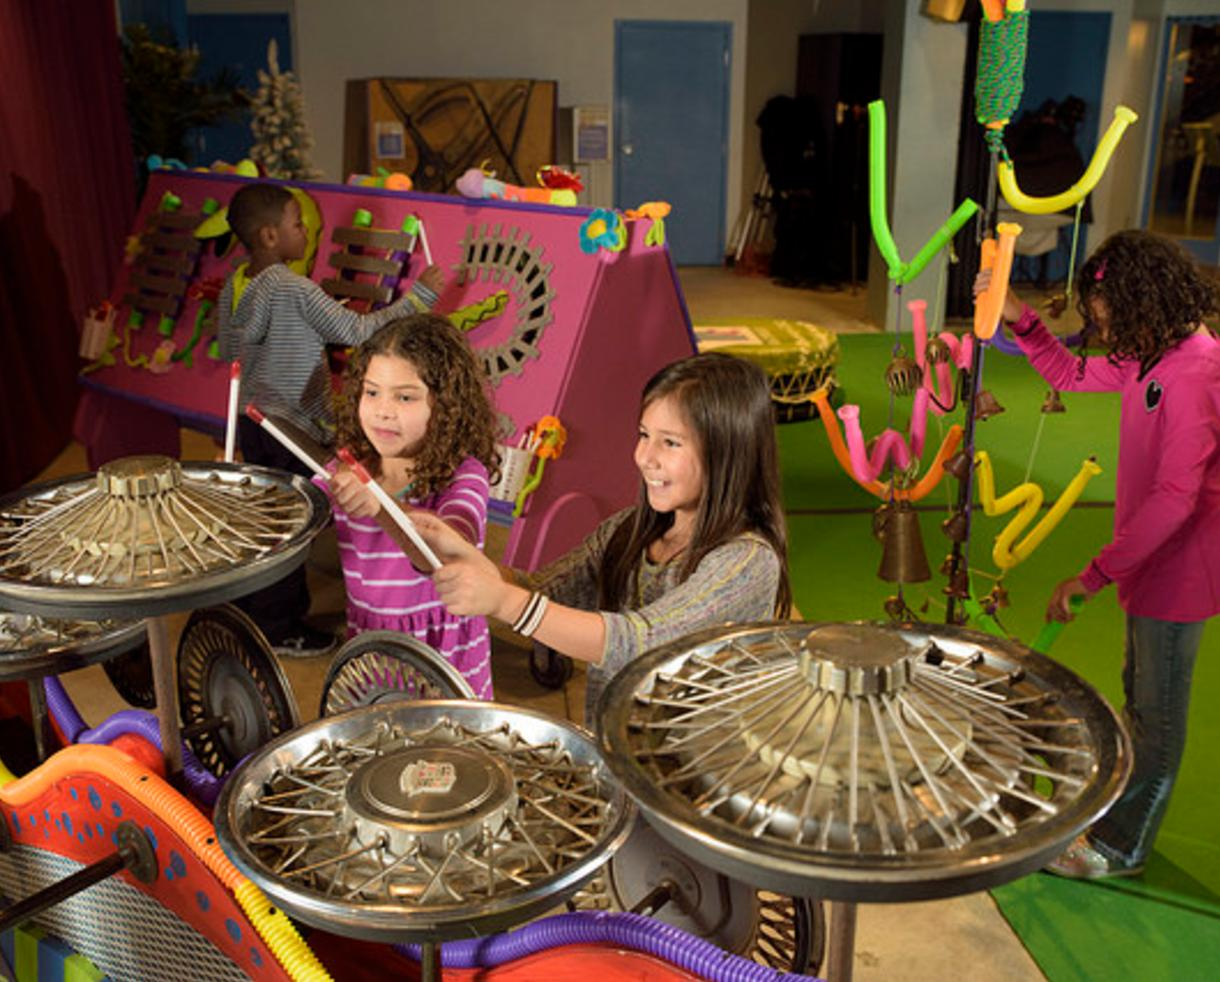 $99 for Family Membership to Port Discovery Children's Museum - Baltimore (Up to 21% Off)